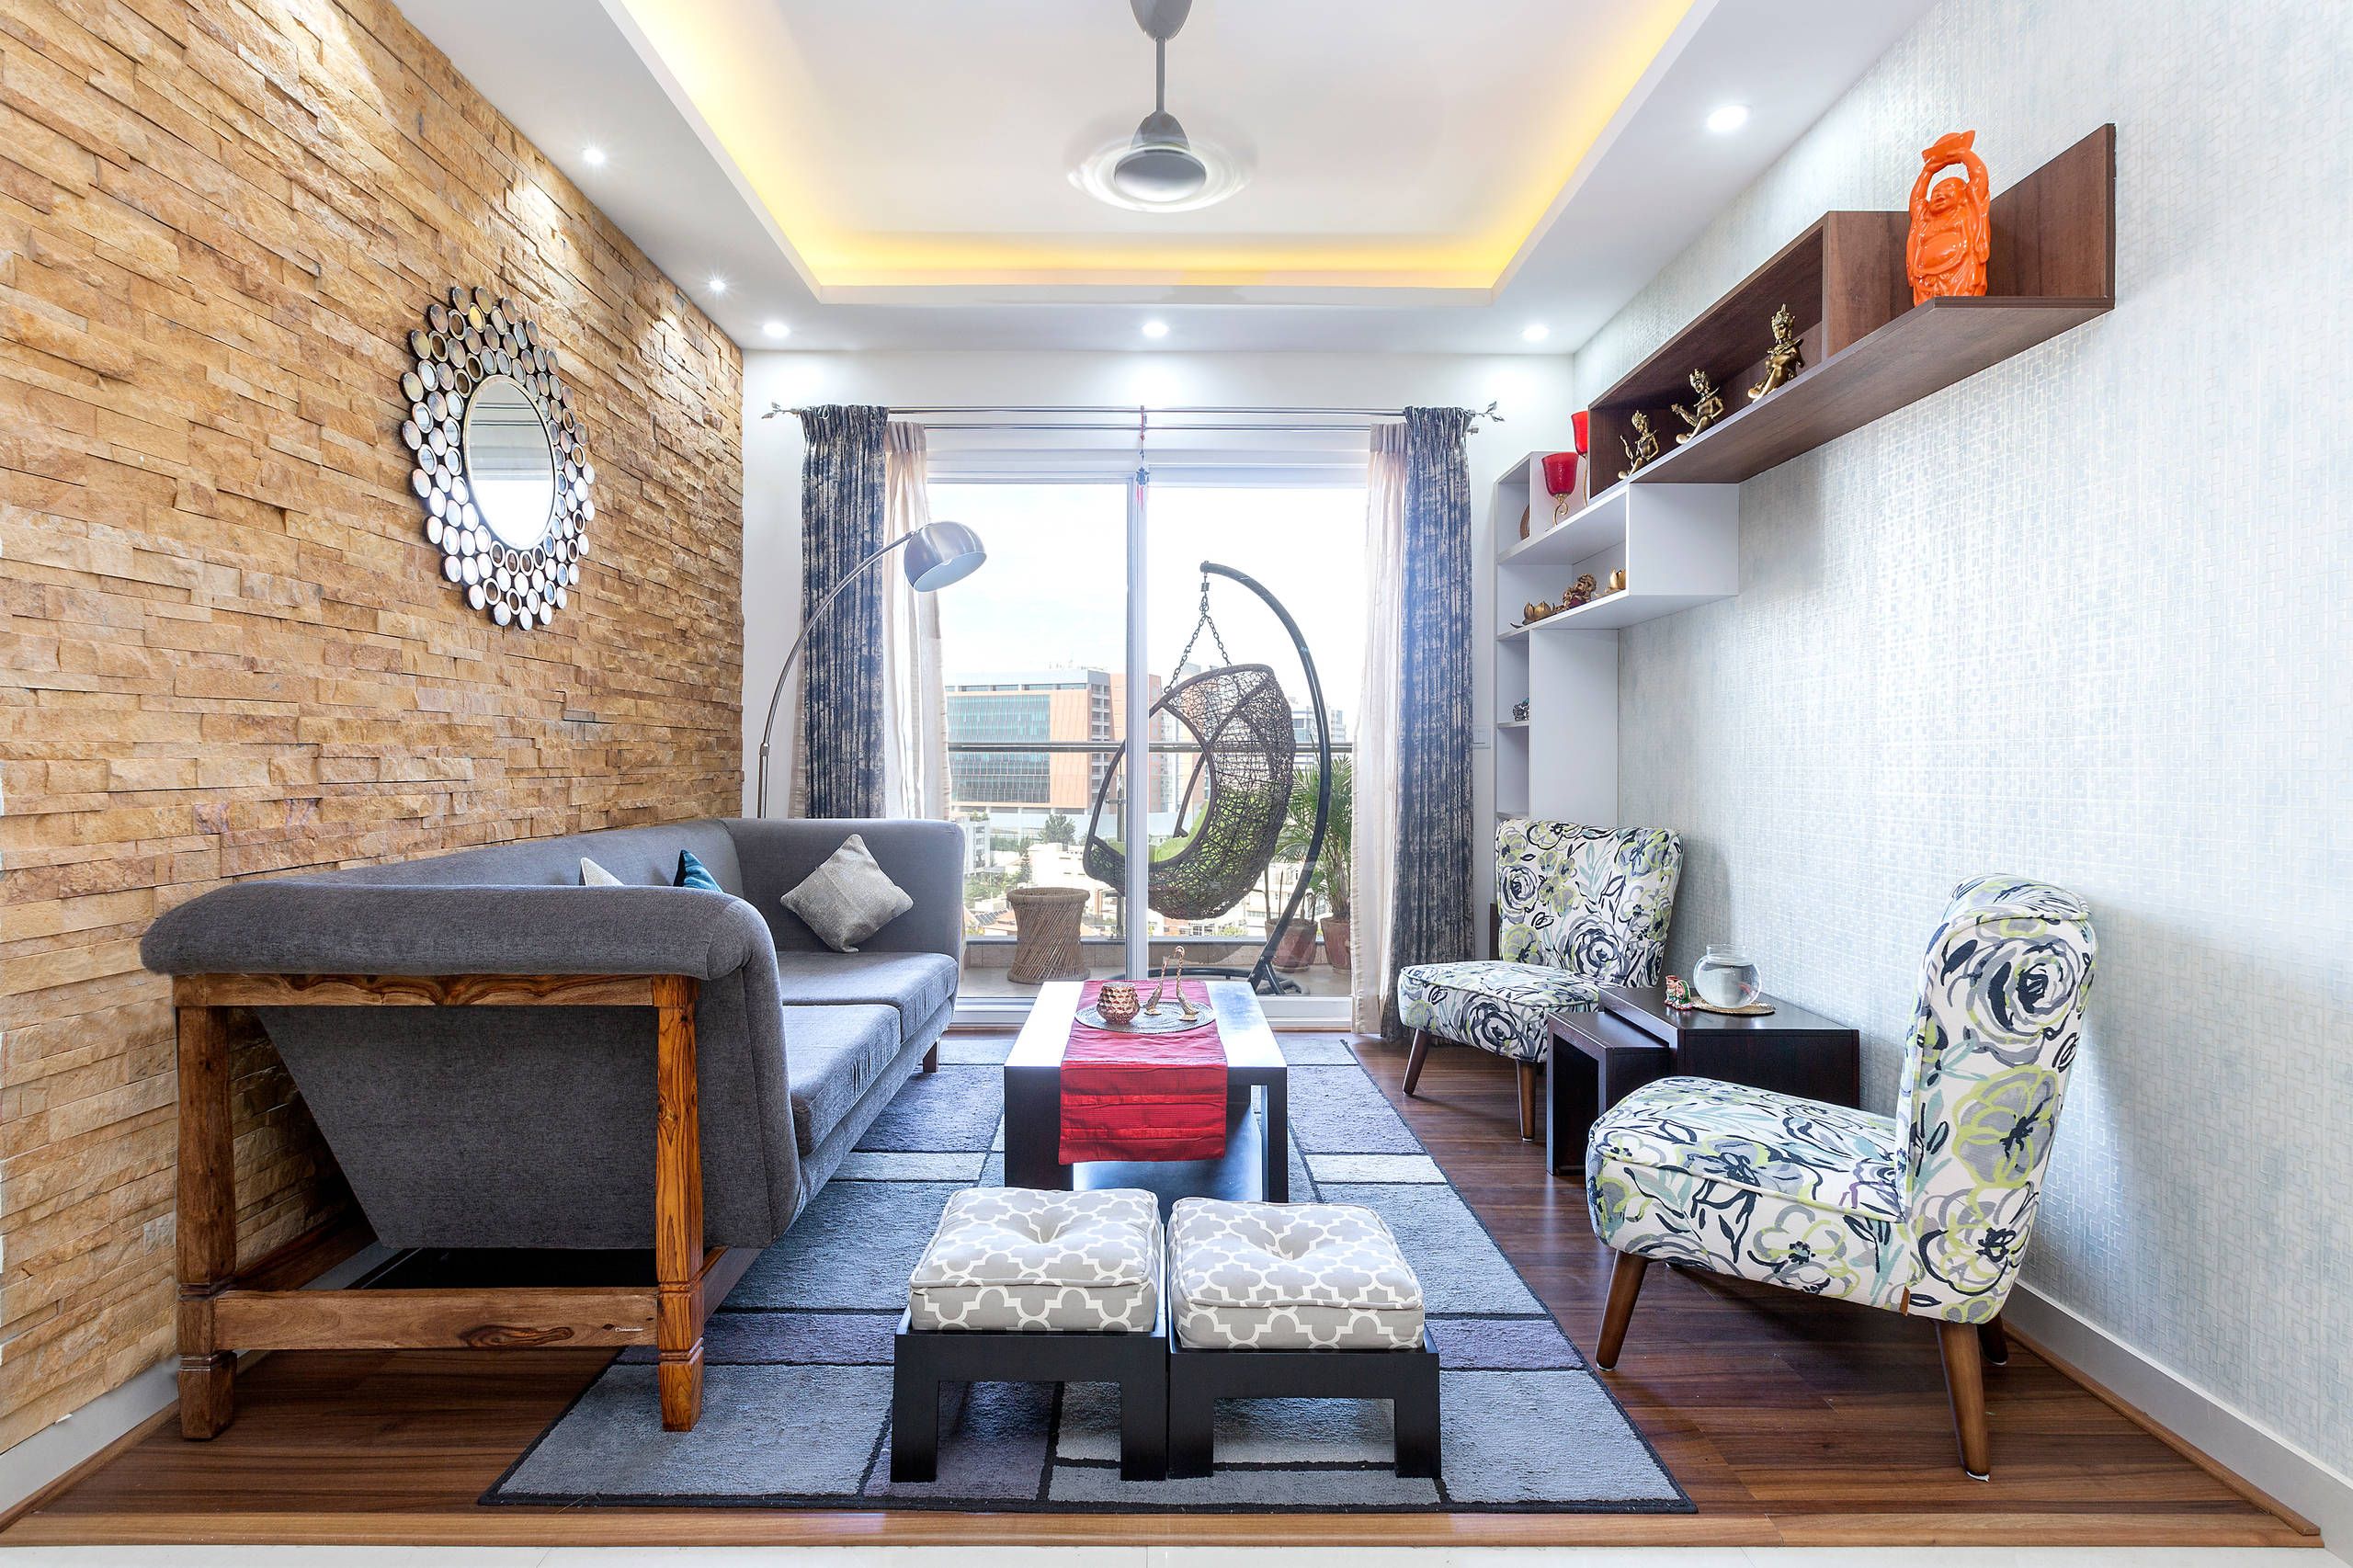 75 Beautiful Asian Living Room Pictures Ideas February 2021 Houzz